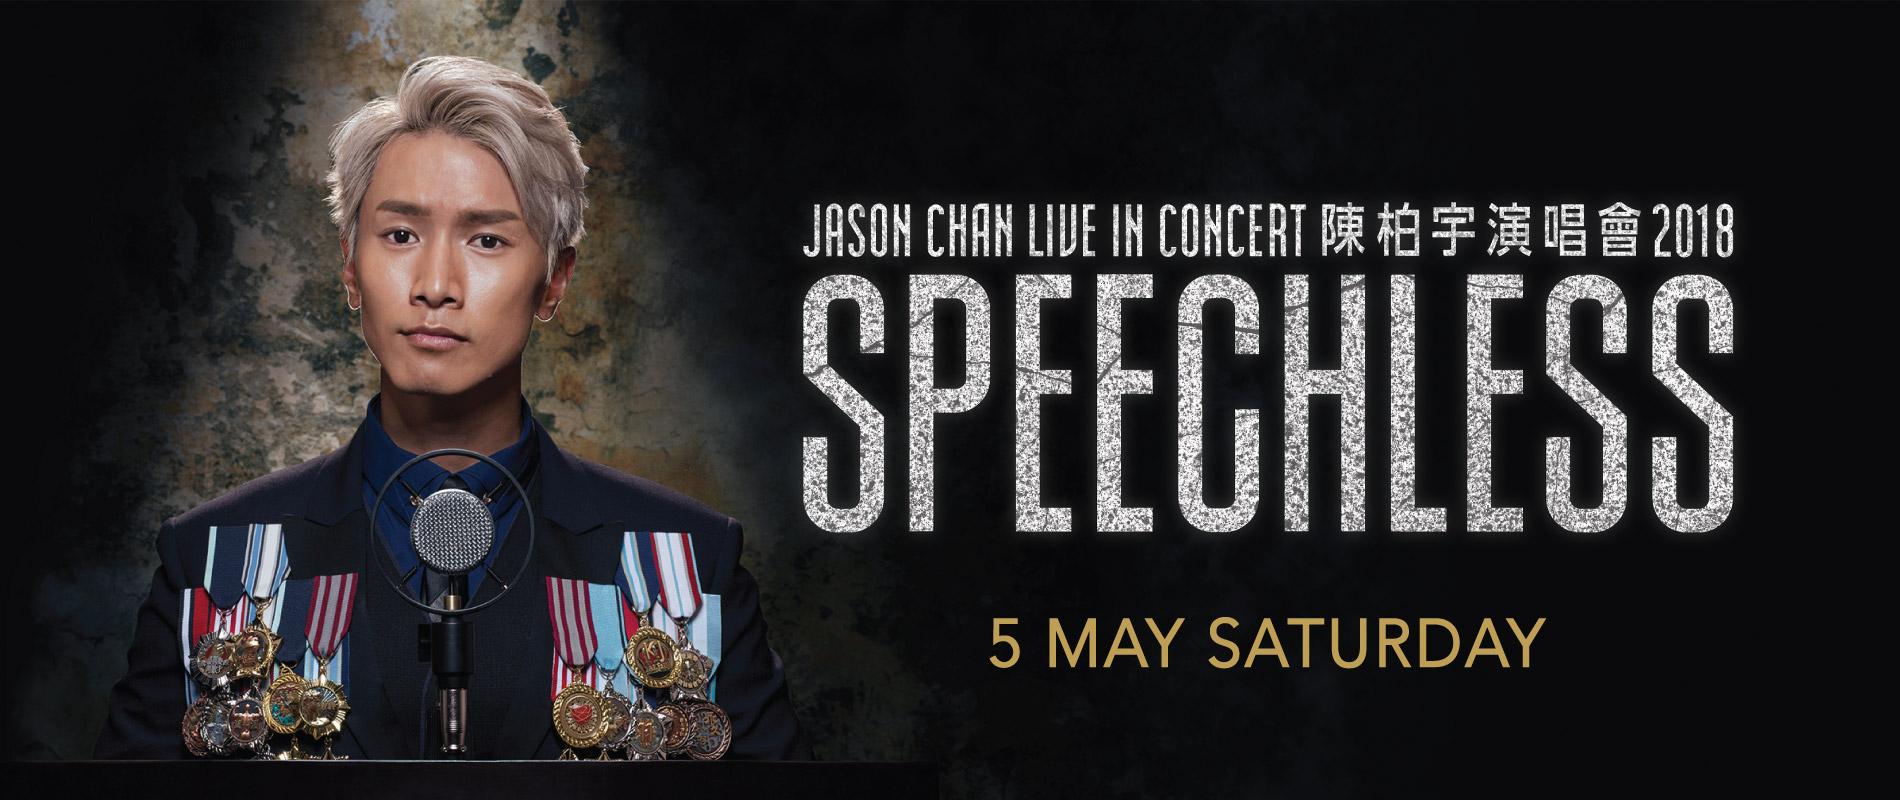 Jason Chan Speechless Live In Concert 2018 in Macao